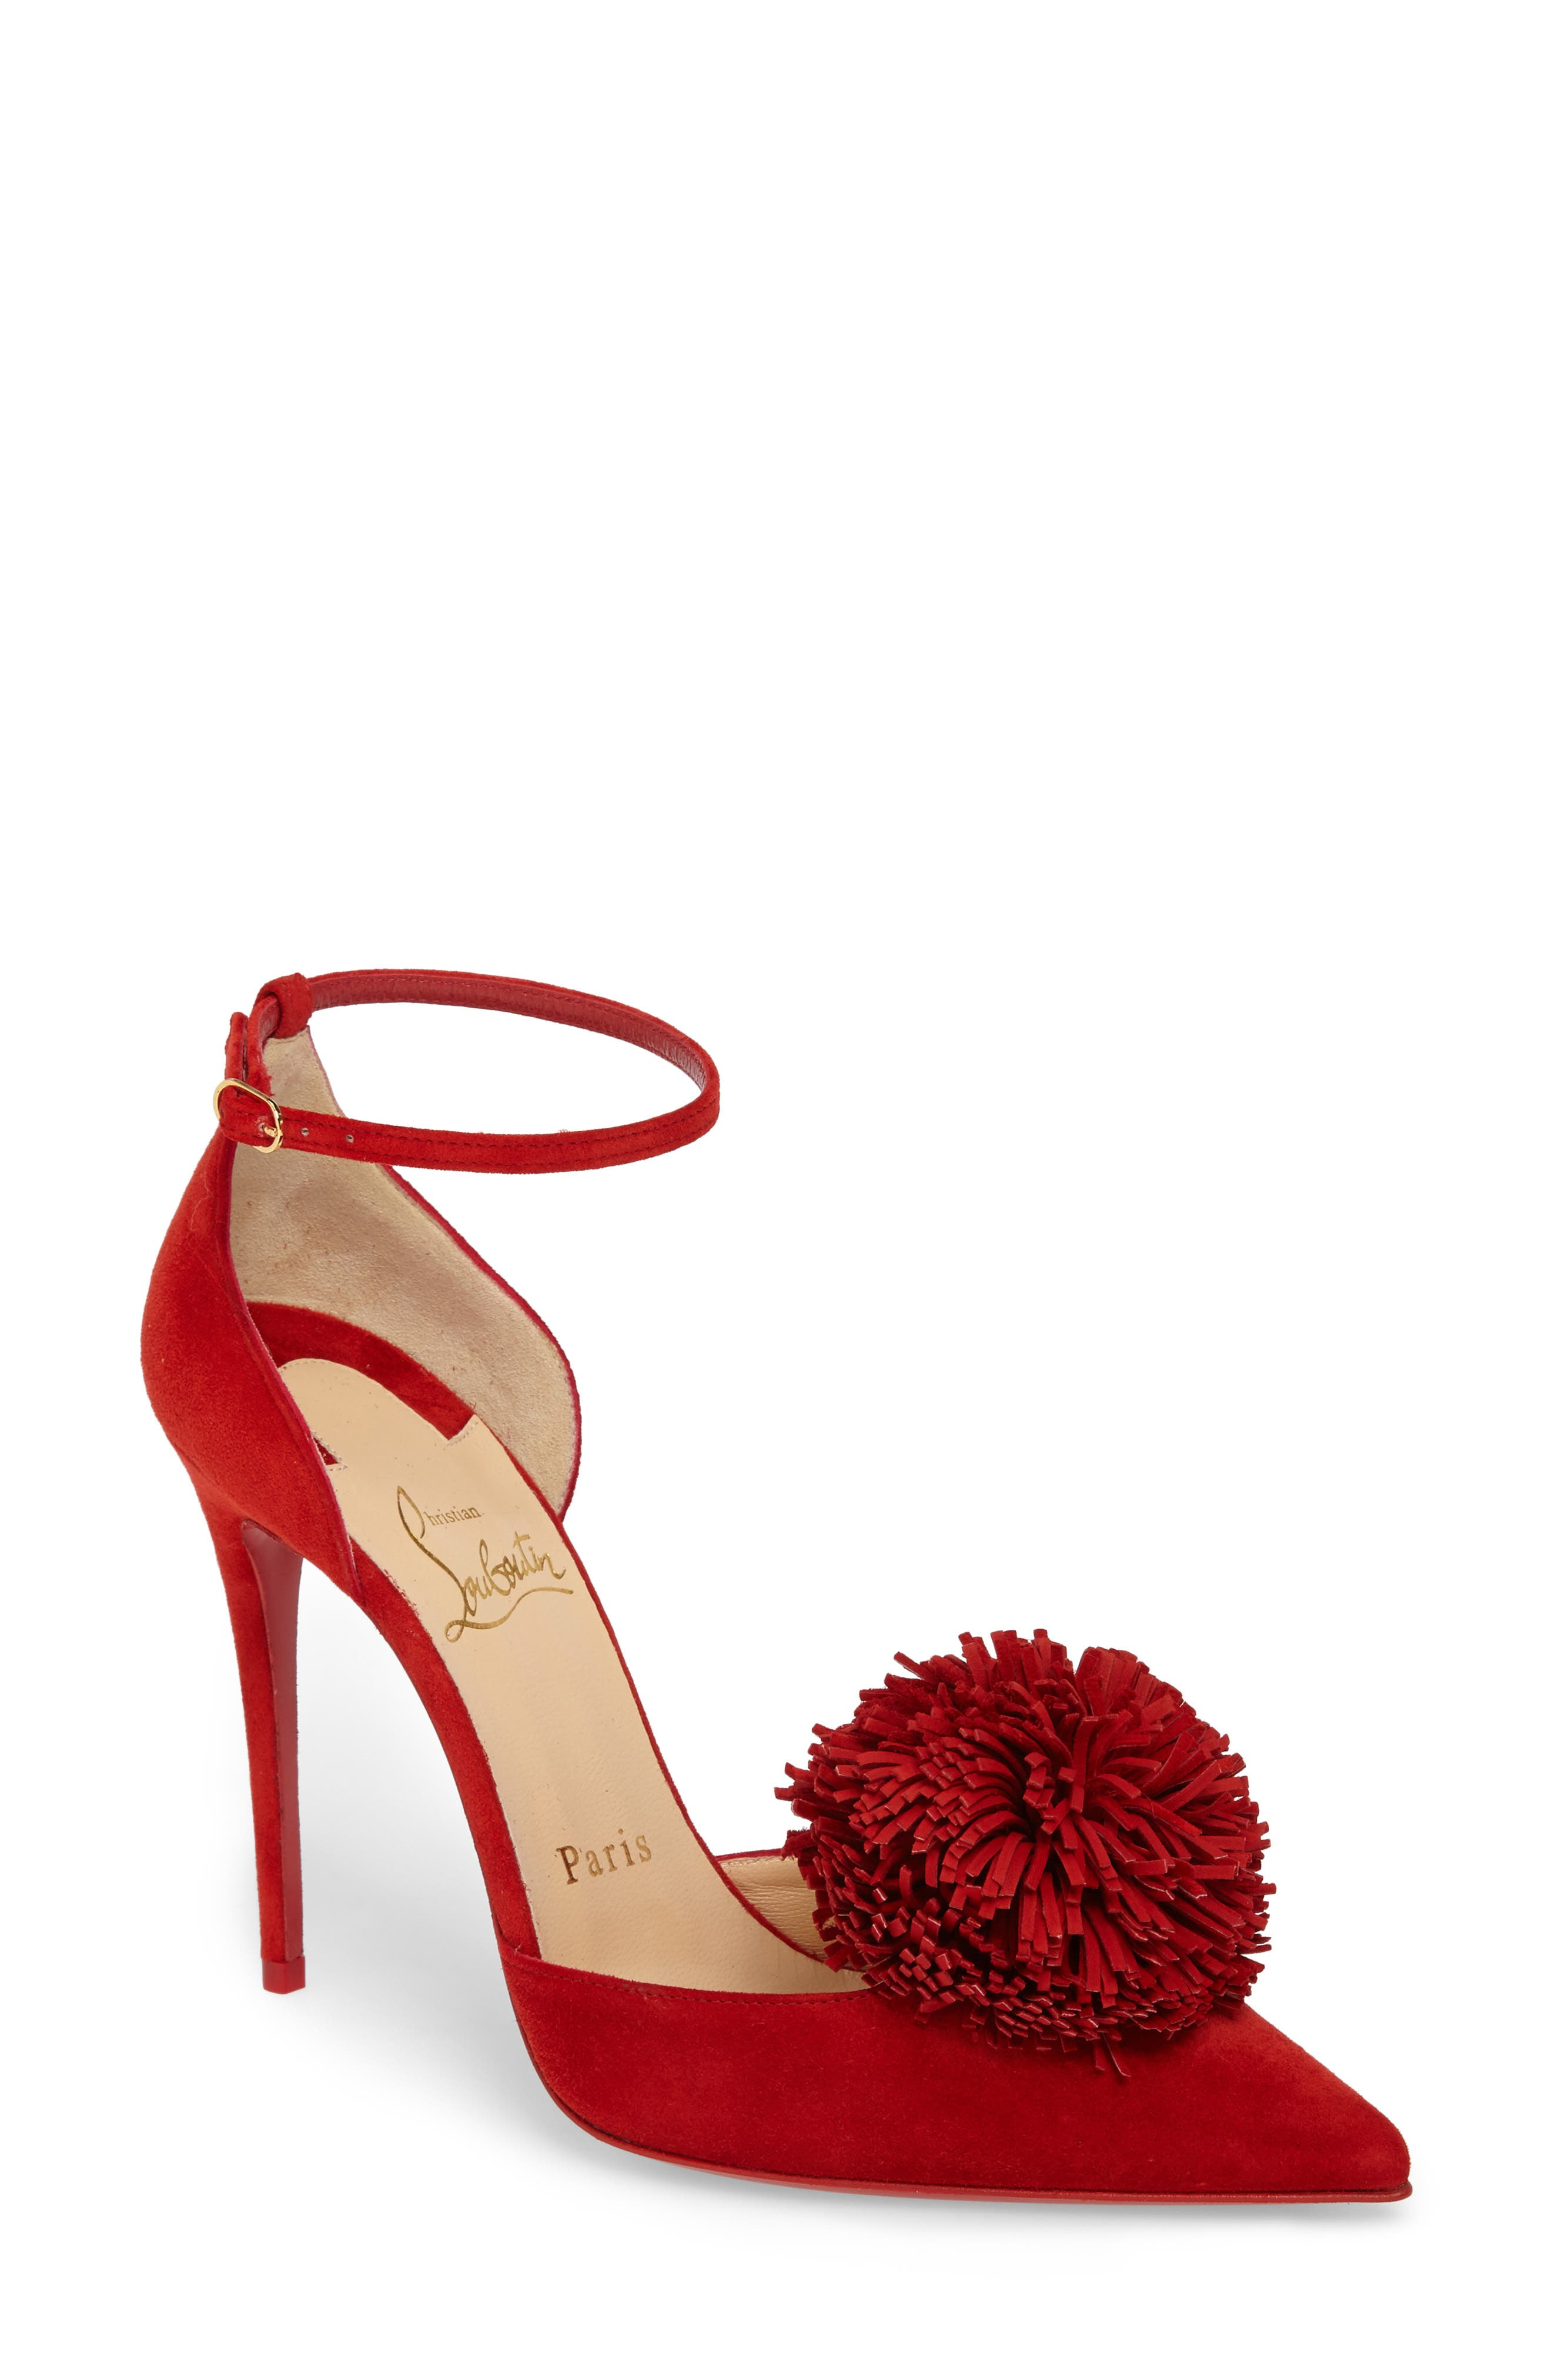 Tsarou Pom Ankle Strap Pump,                         Main,                         color, Red Suede